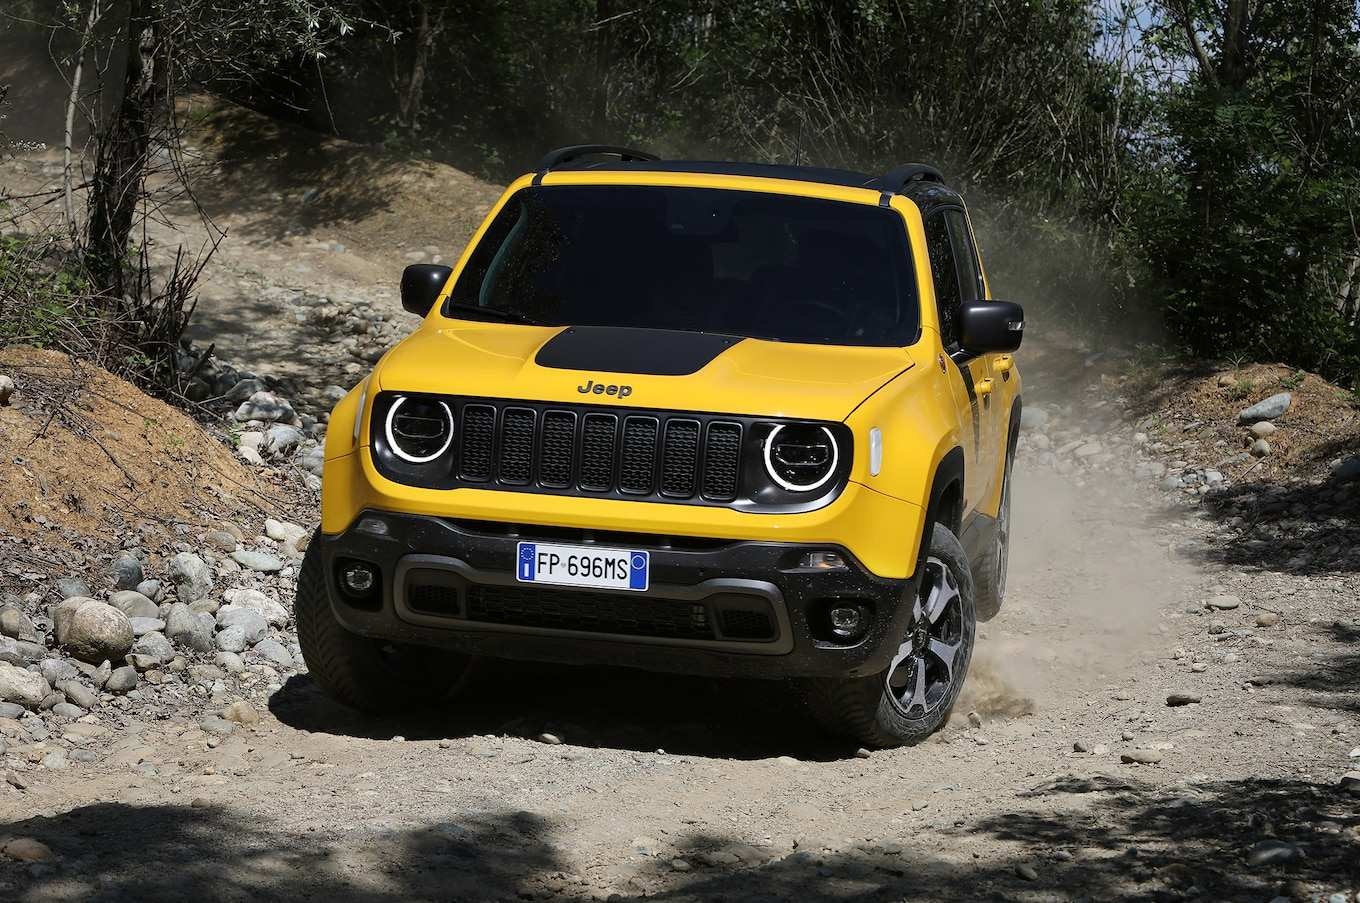 79 All New Jeep Renegade 2020 Colors Engine